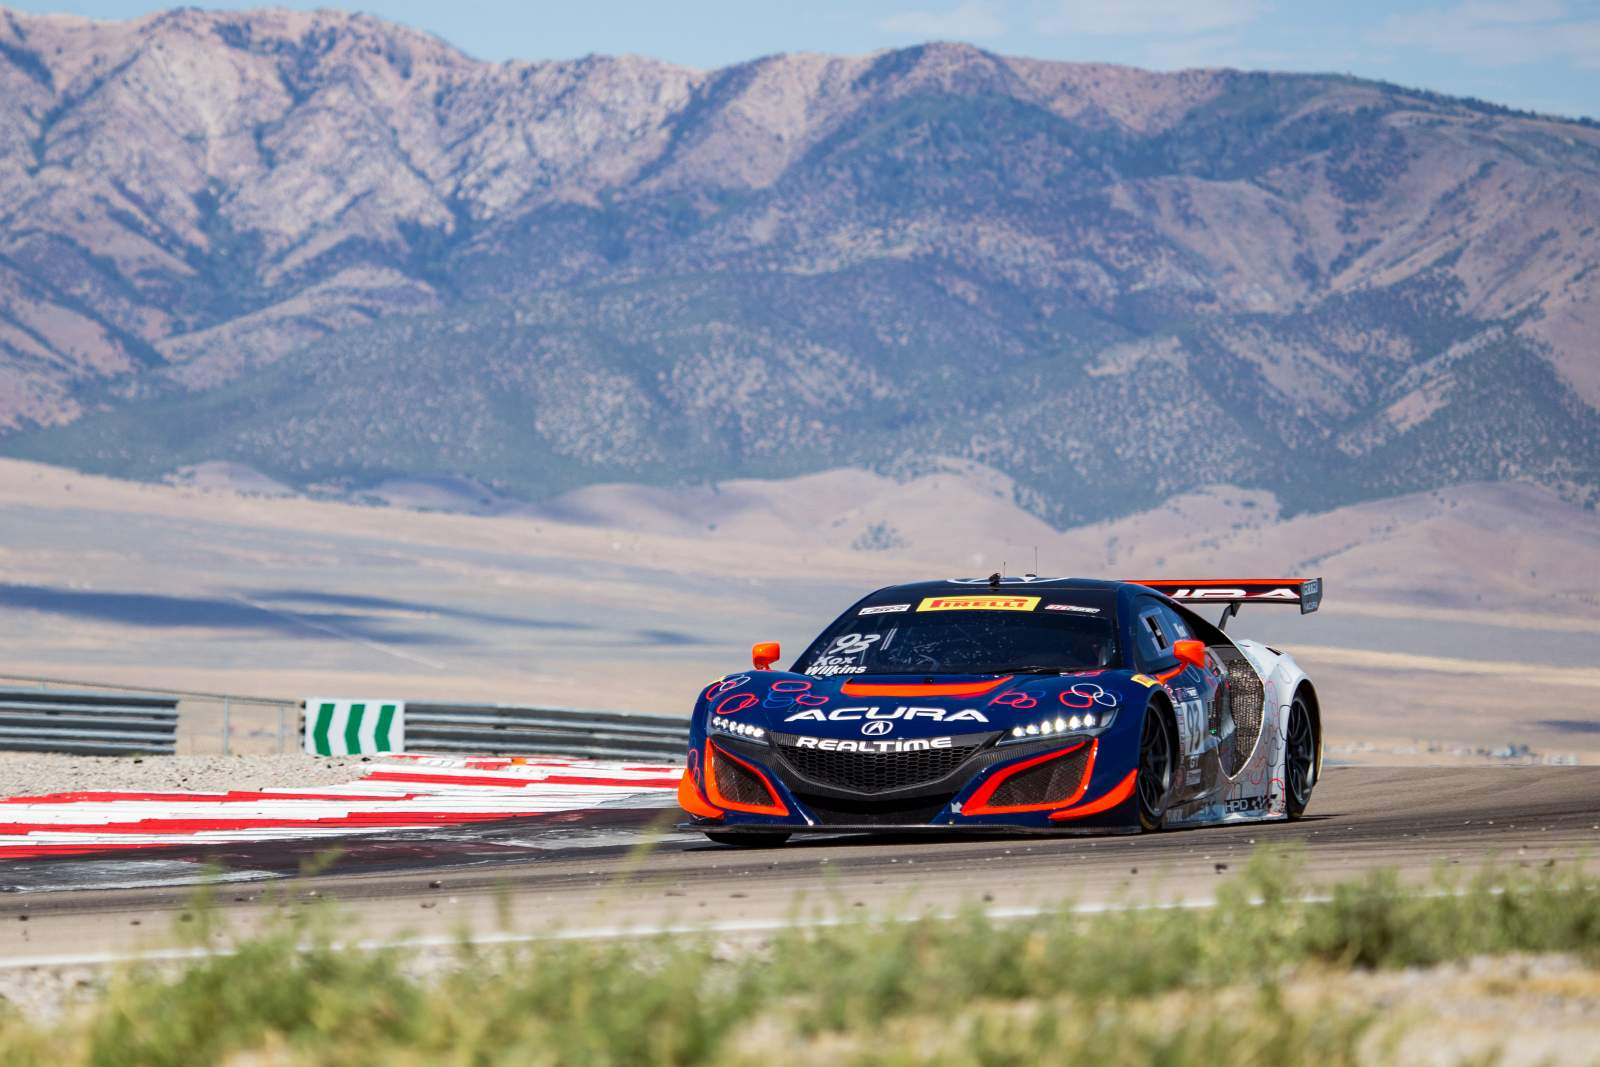 peter-kox-realtime-racing-pirelli-world-challenge-utah-motorsport-campus--109